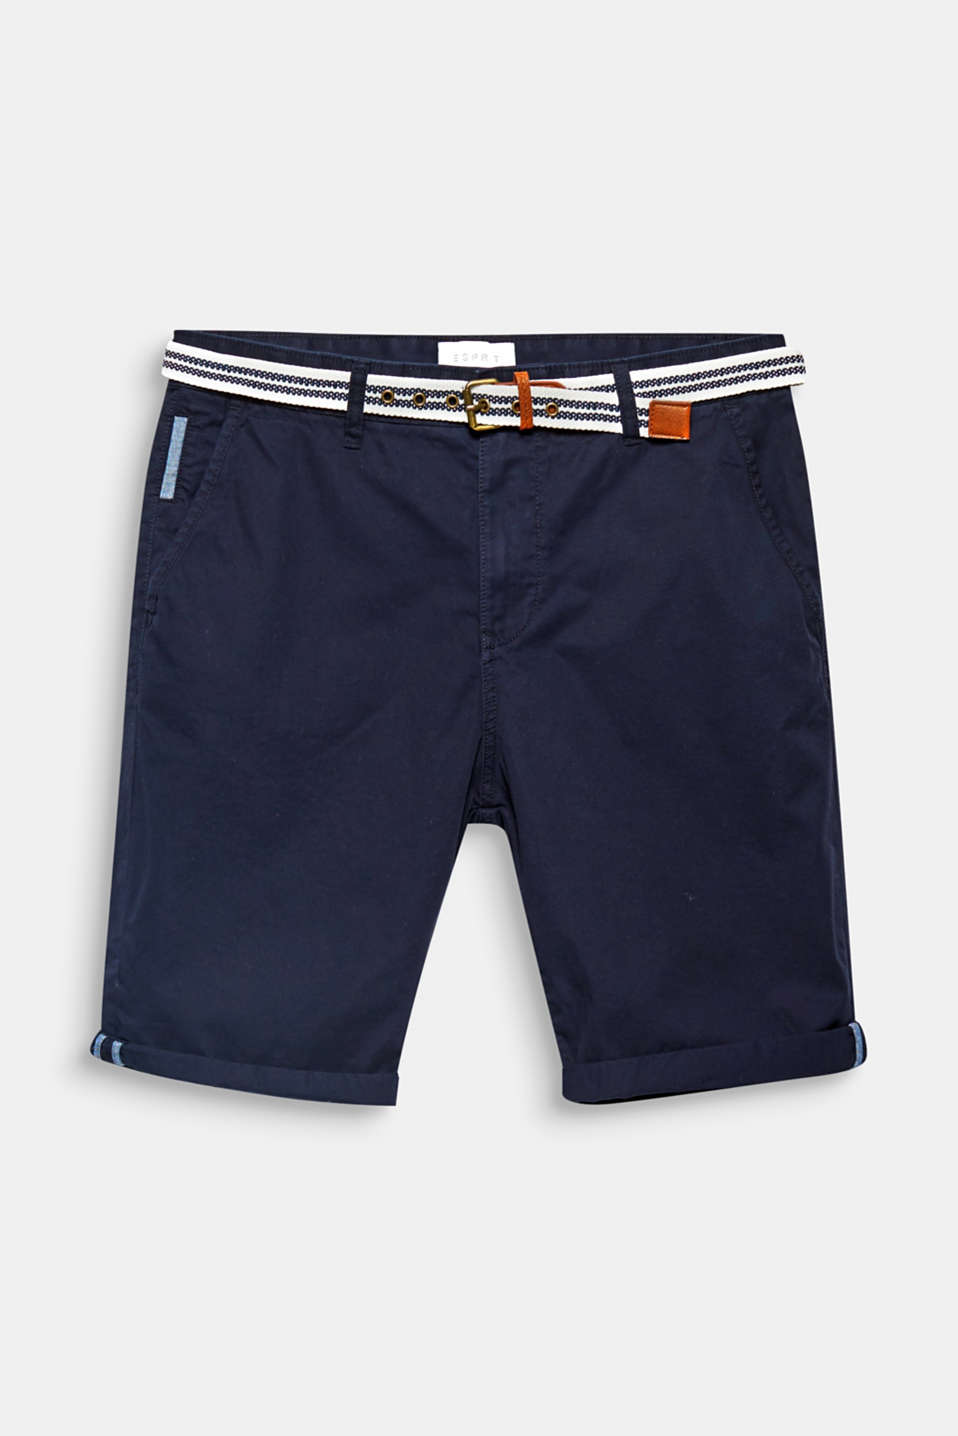 The nautical striped woven belt completes the timeless design of these chino shorts.